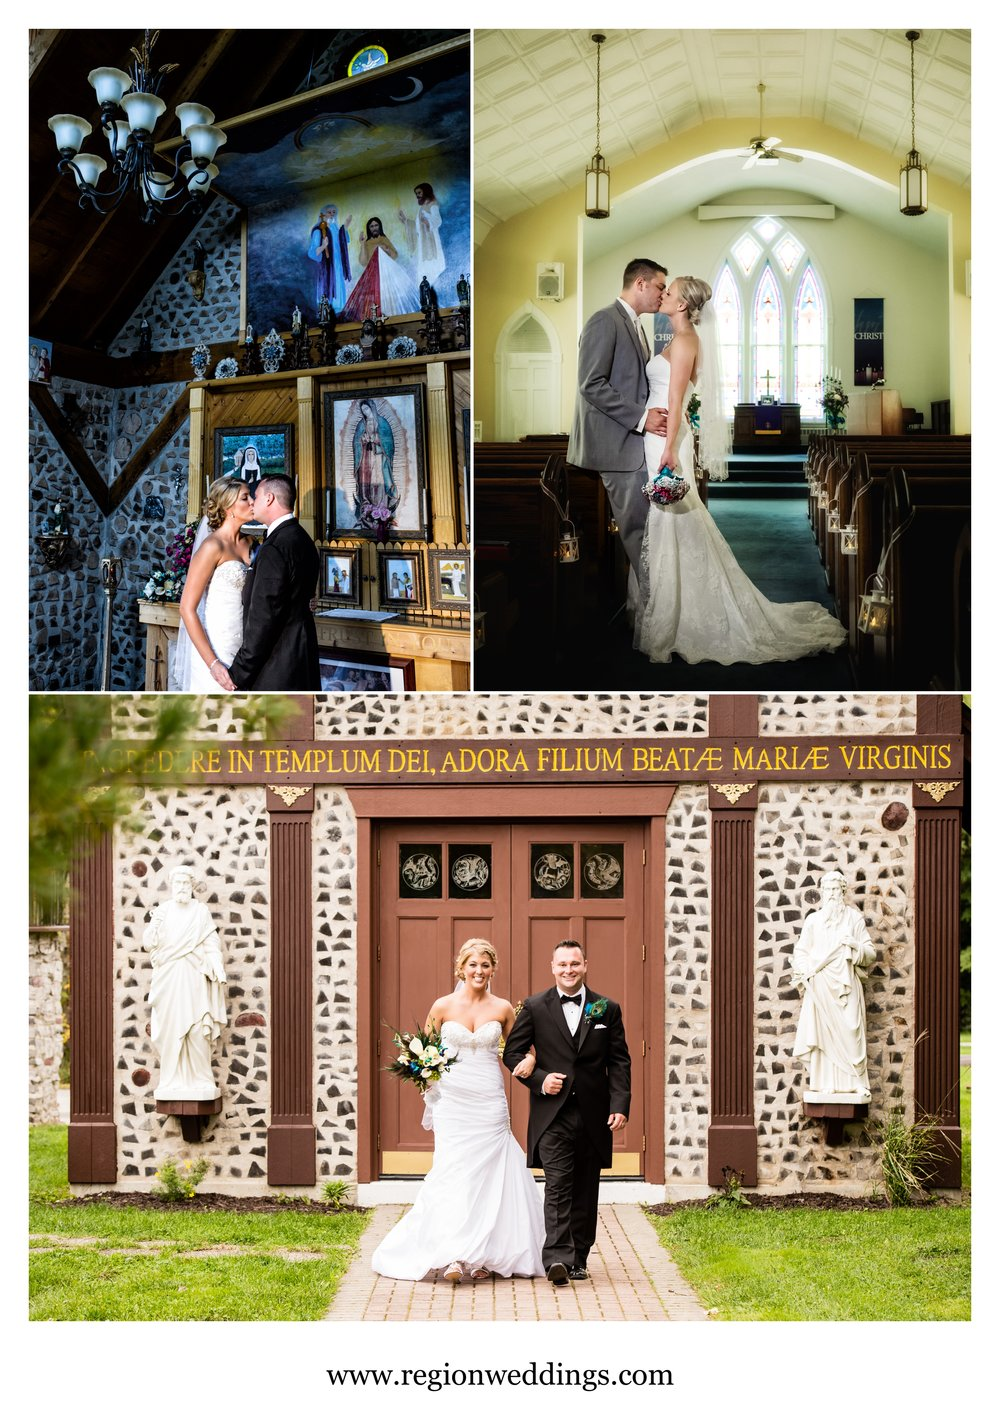 Beautiful married couples at their wonderful churches.